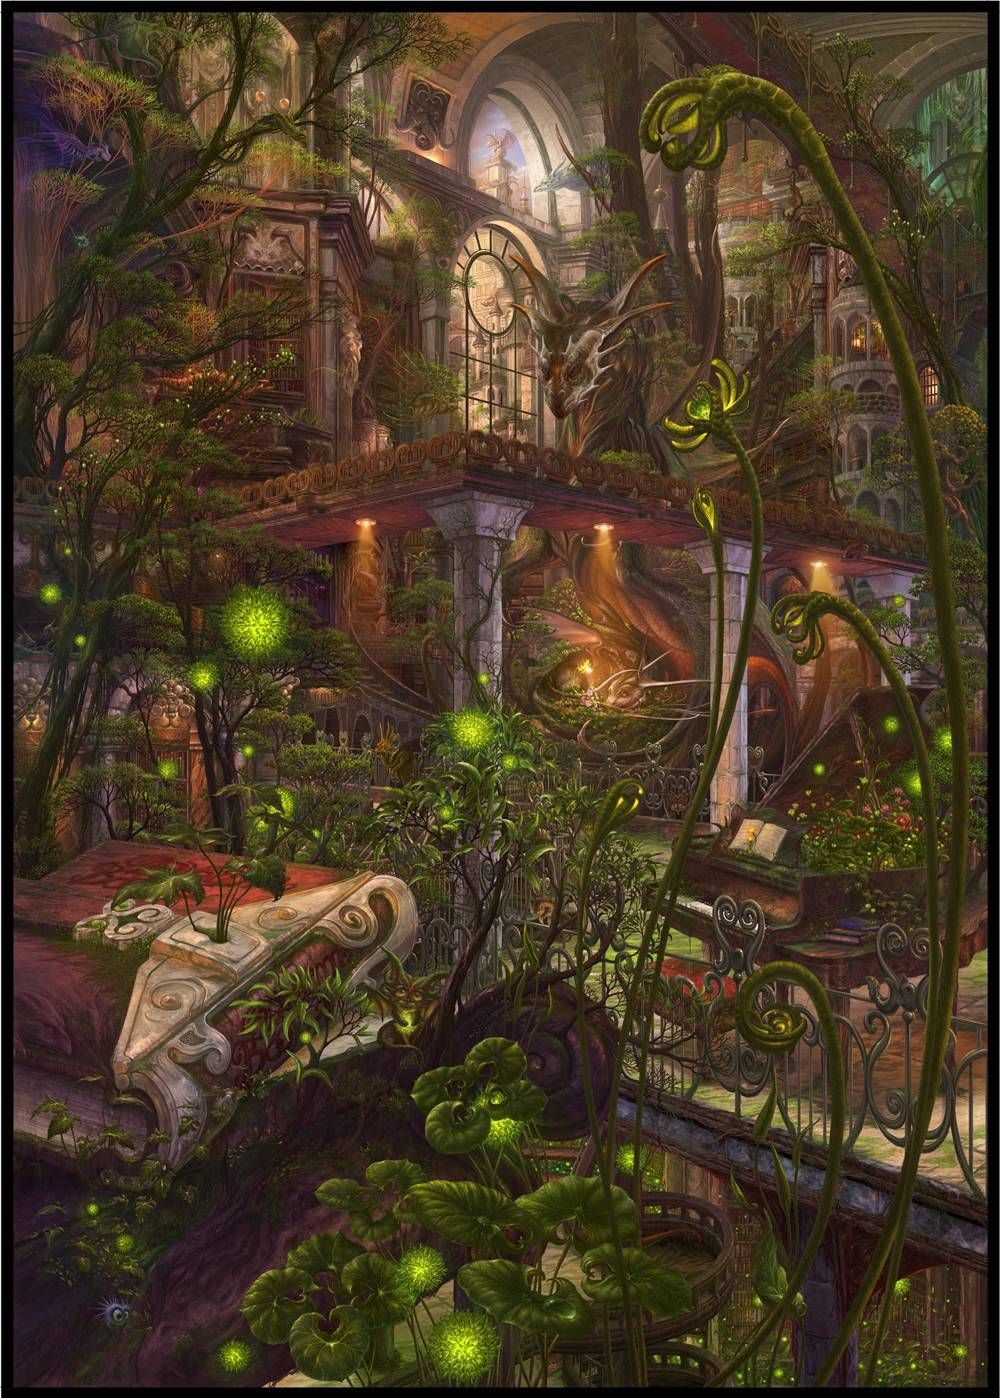 Enchanted Overgrown Library by Kazumasa Ucchiey.